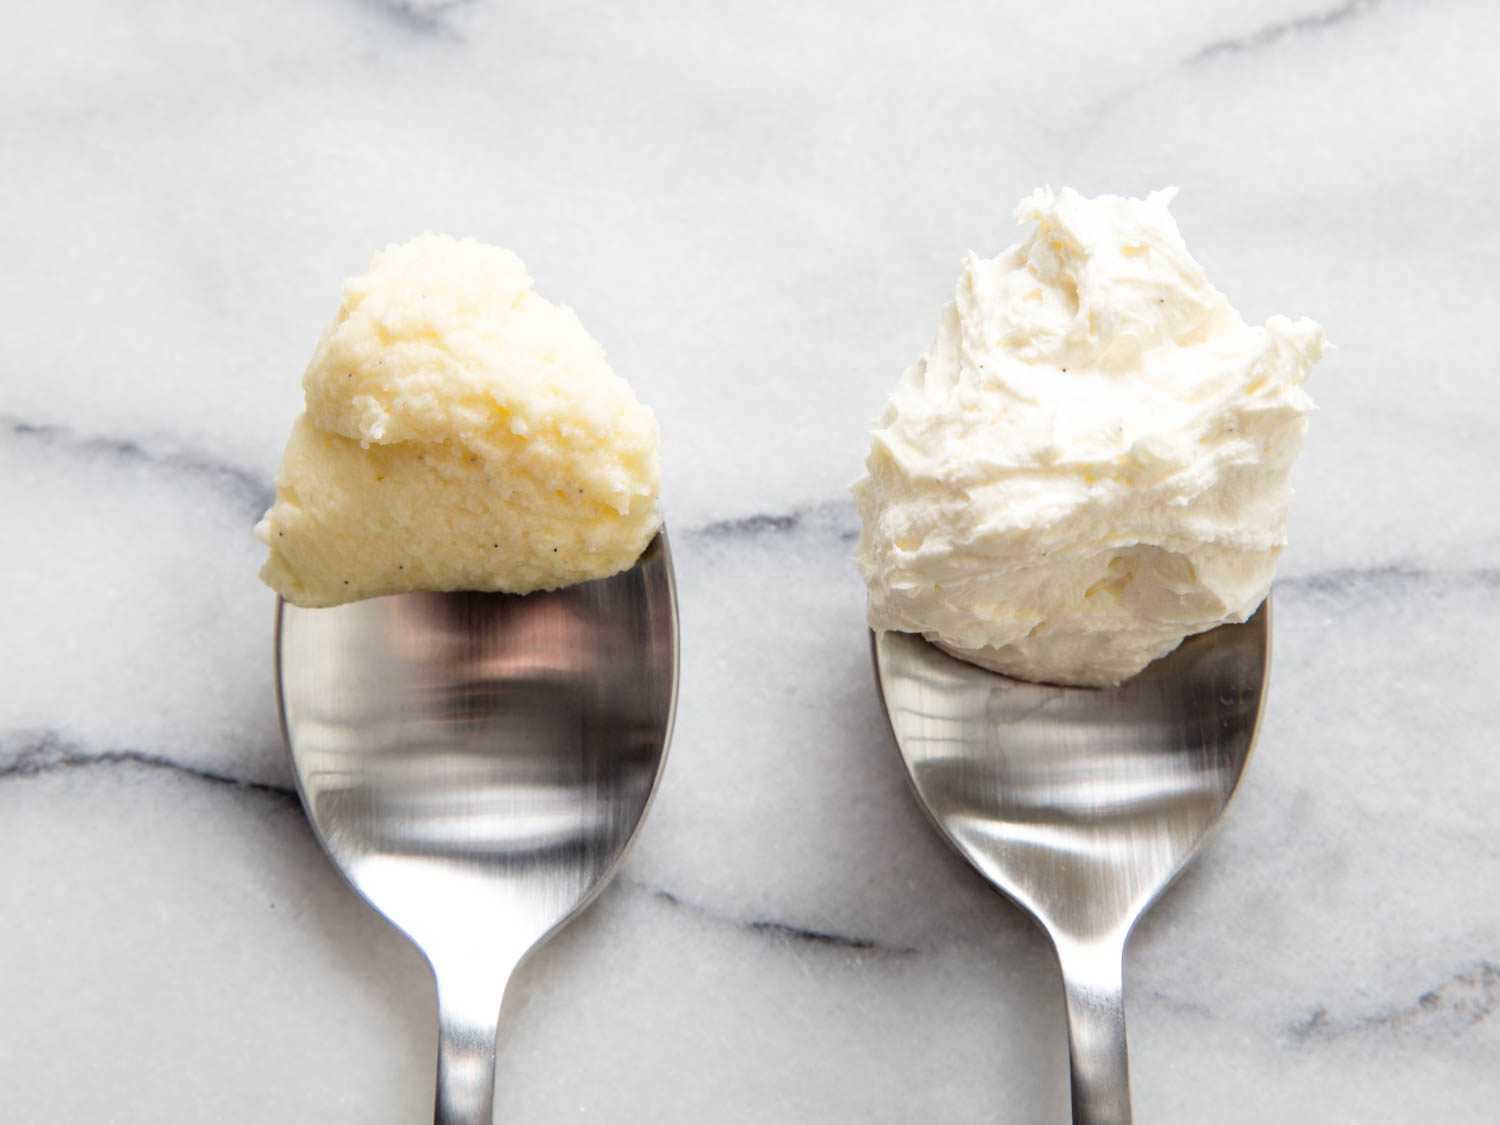 A spoonful of dense, cold buttercream (left) and a spoonful of light buttercream at the proper temperature (right)